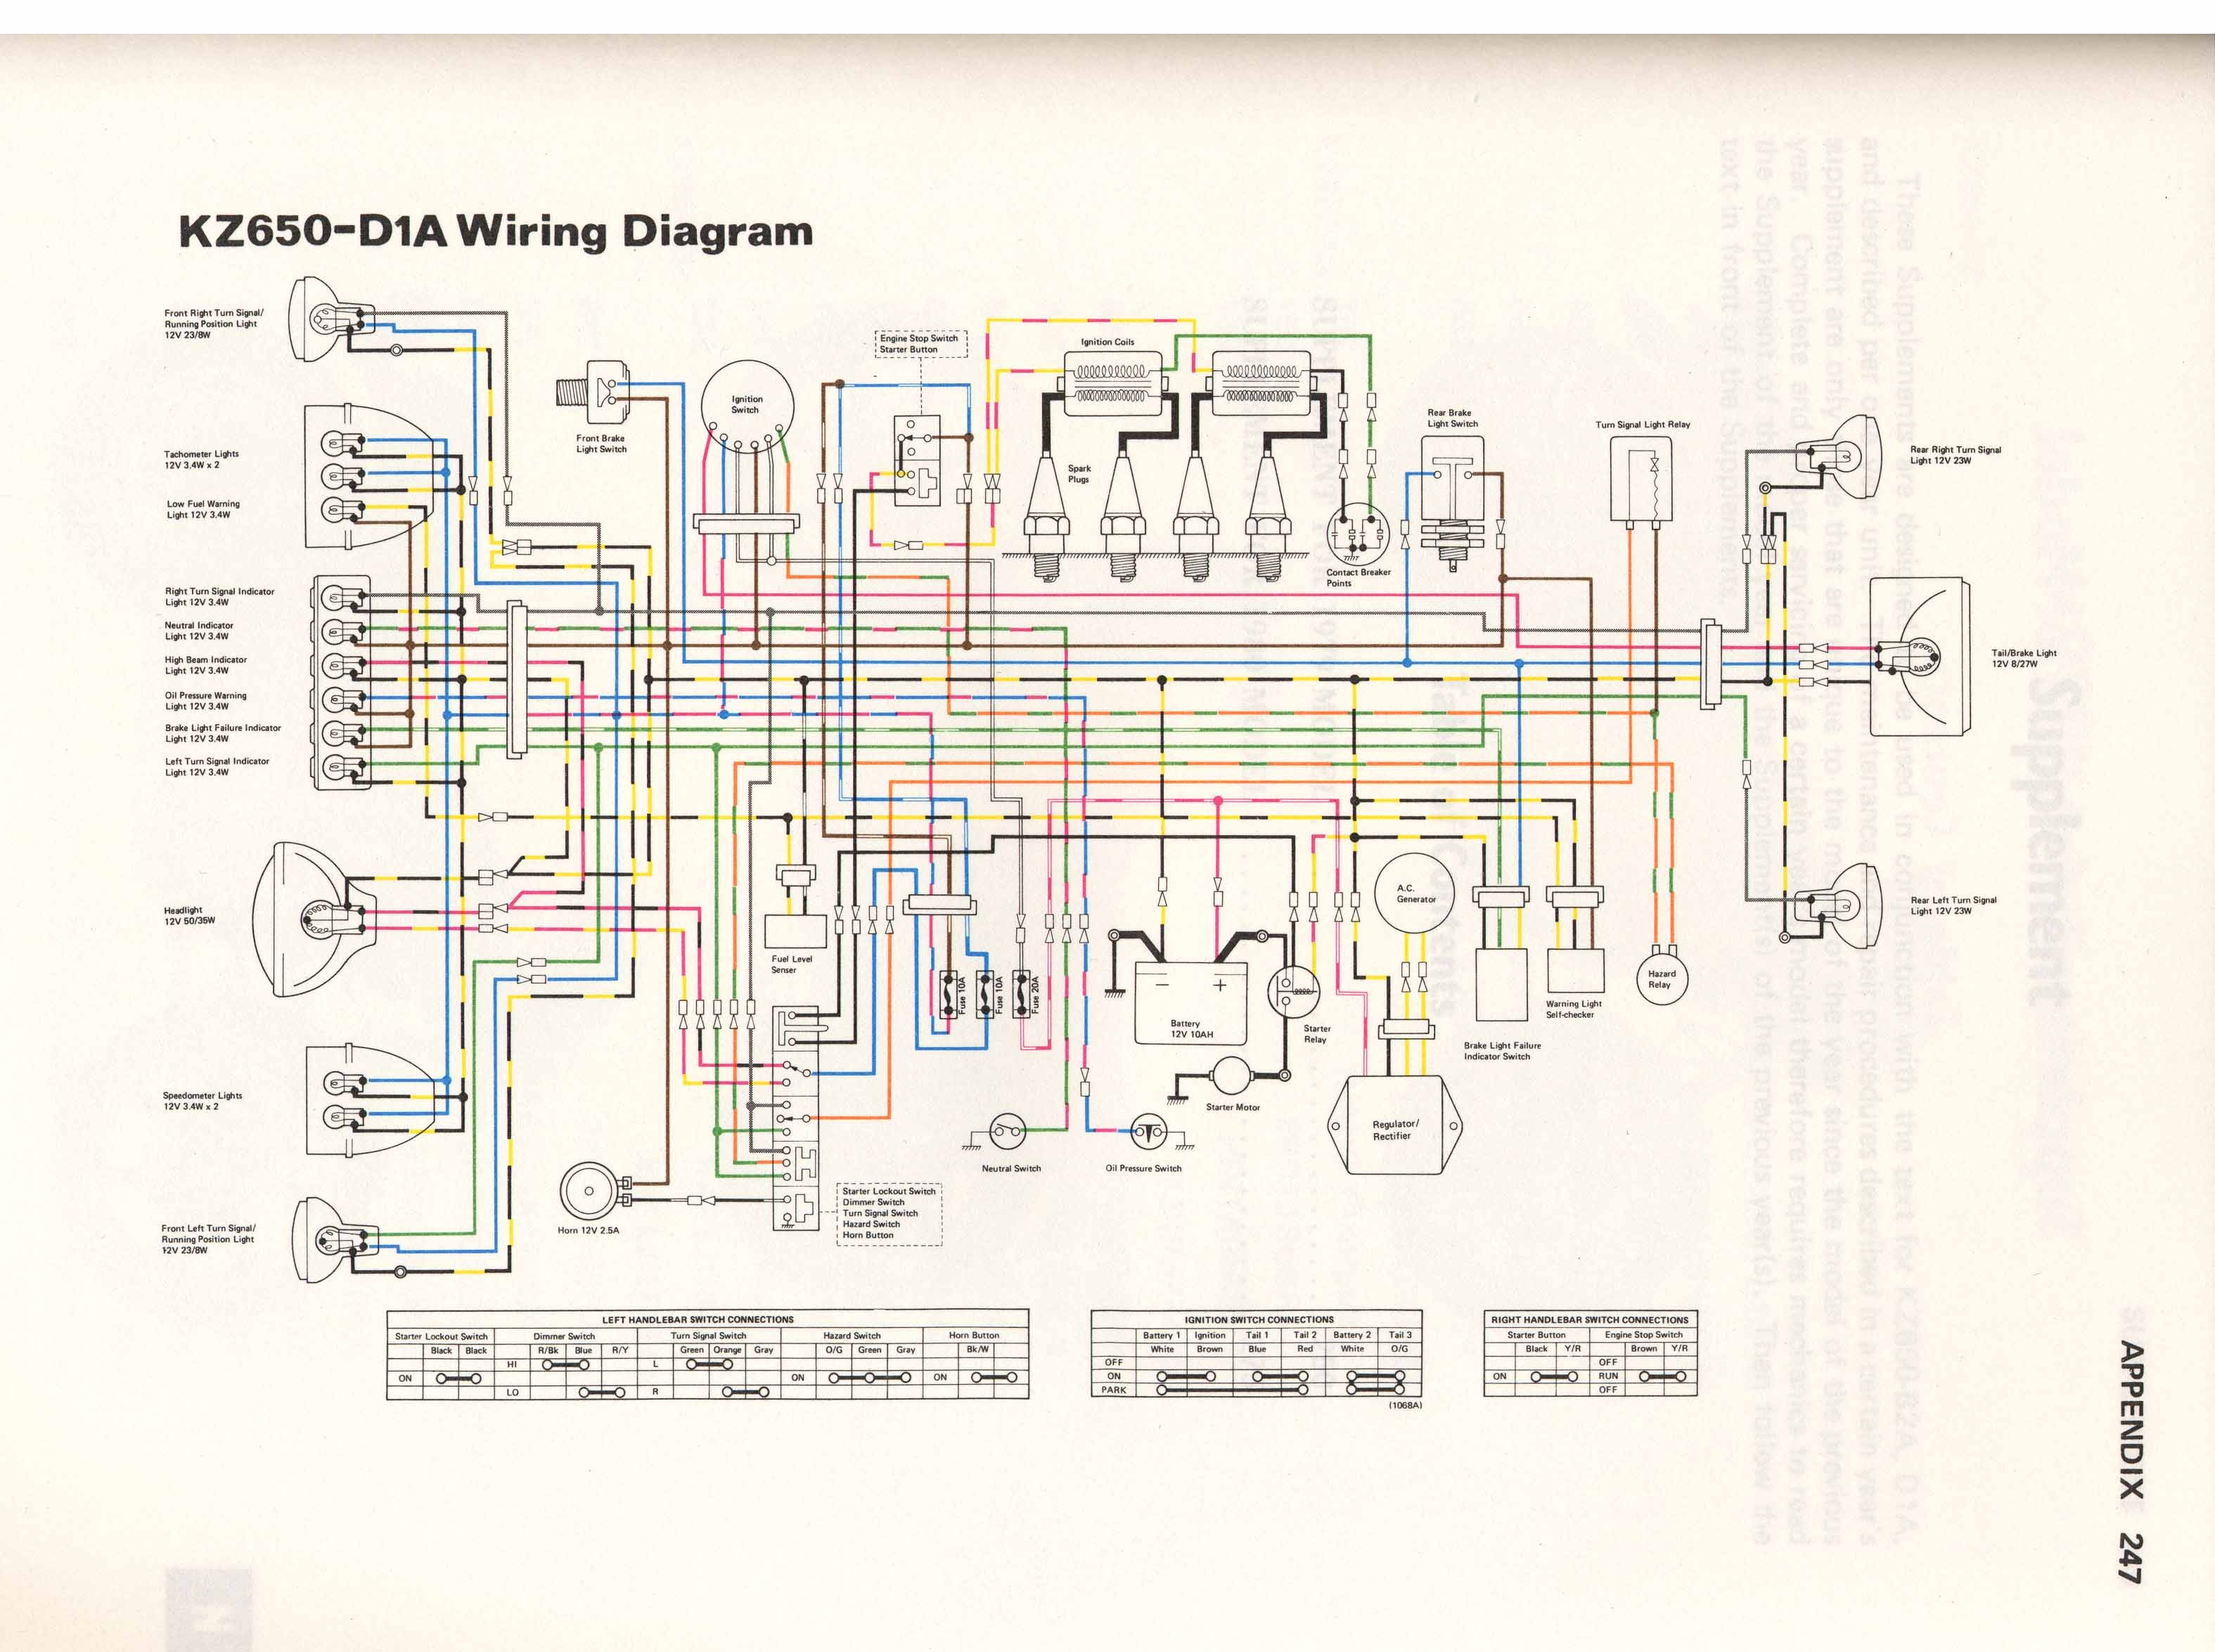 Fzr 1000 Wiring Diagram Just Another Data 600 82 Kz1000 Schematics Fzr400 Windscreen